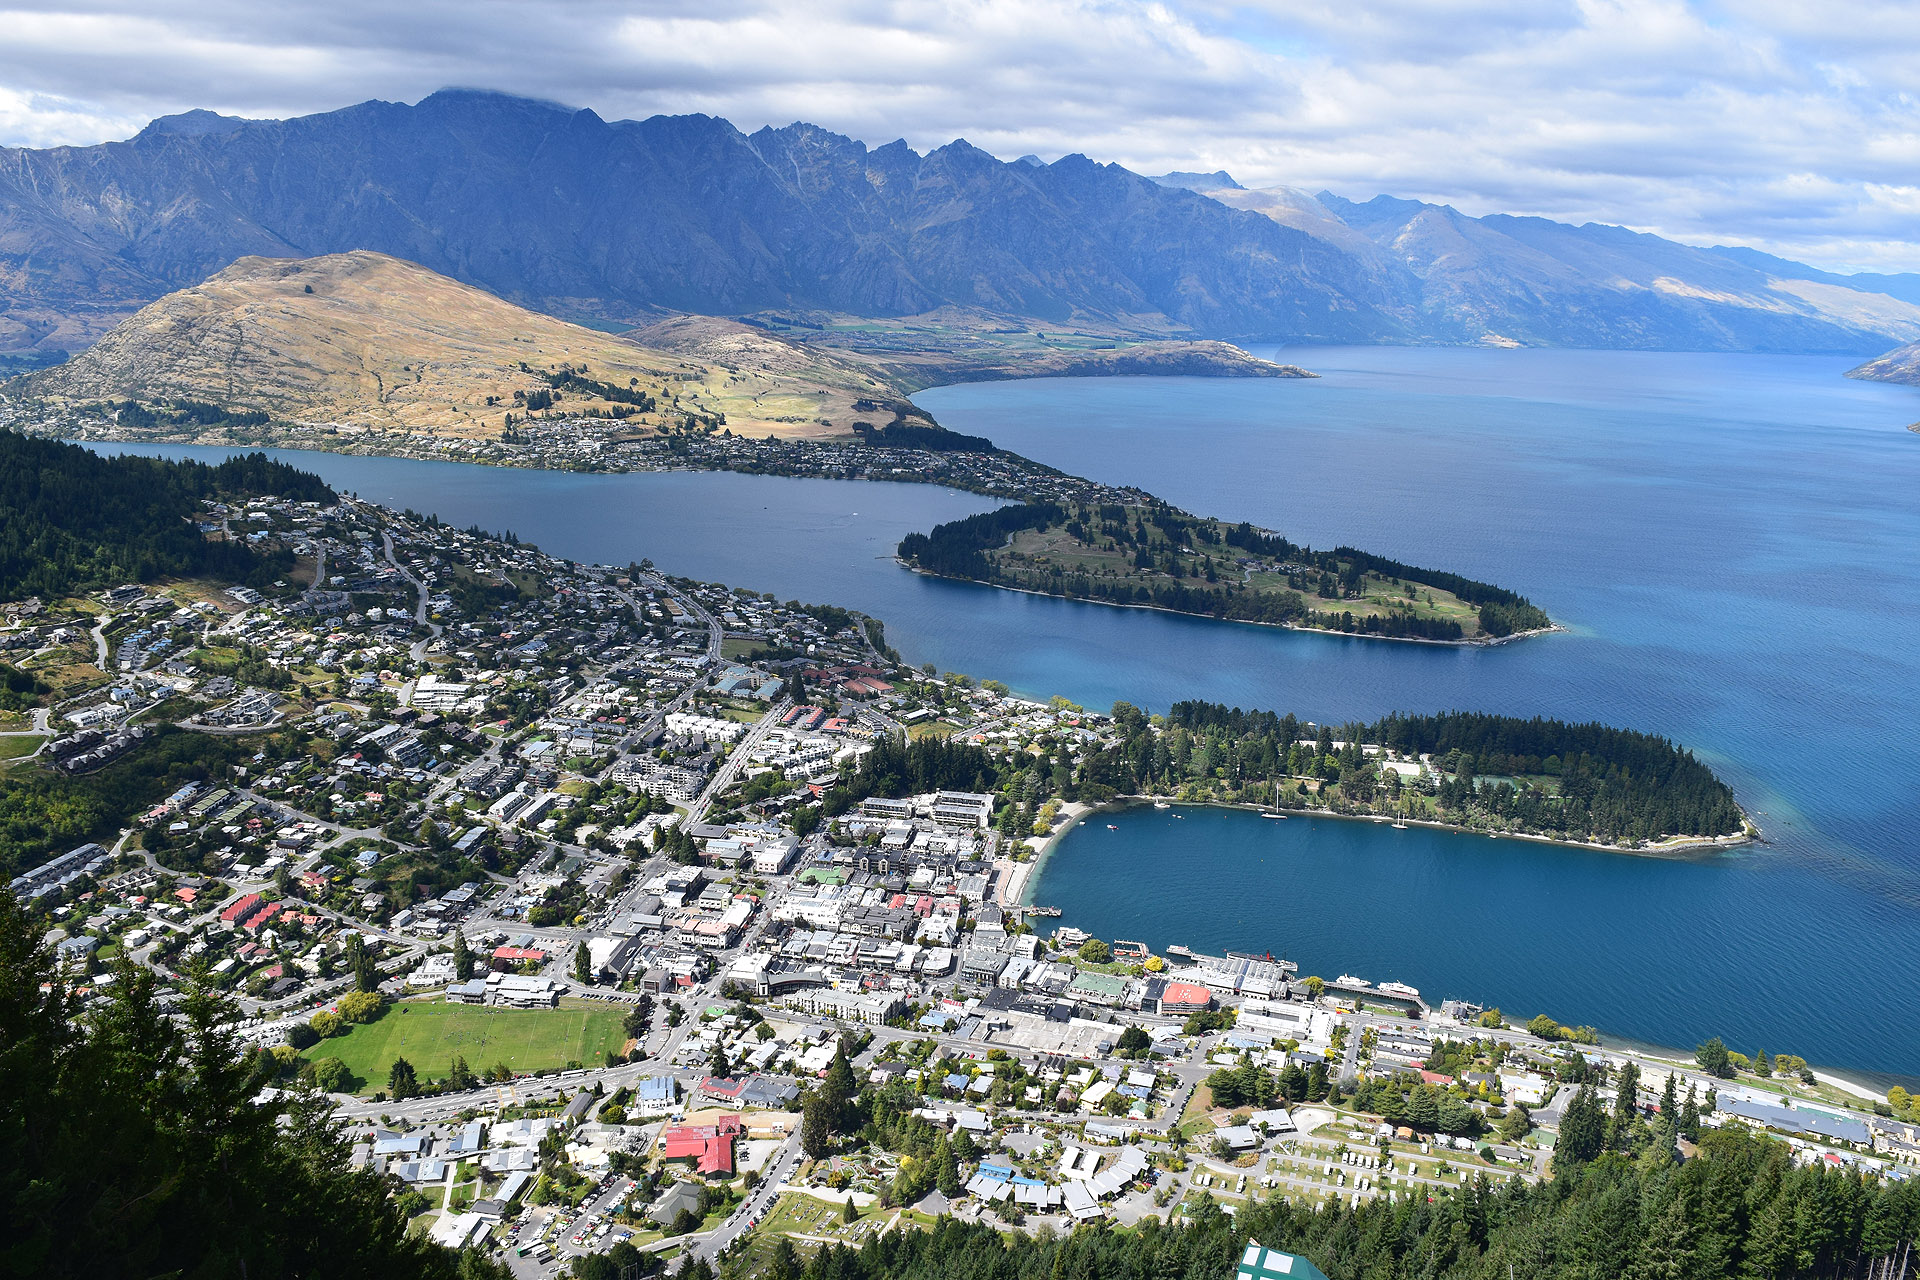 Adventure-travel hotspot Queenstown on Lake Wakatipu is a jumping-off spot for tours of the Central Otago wine region.